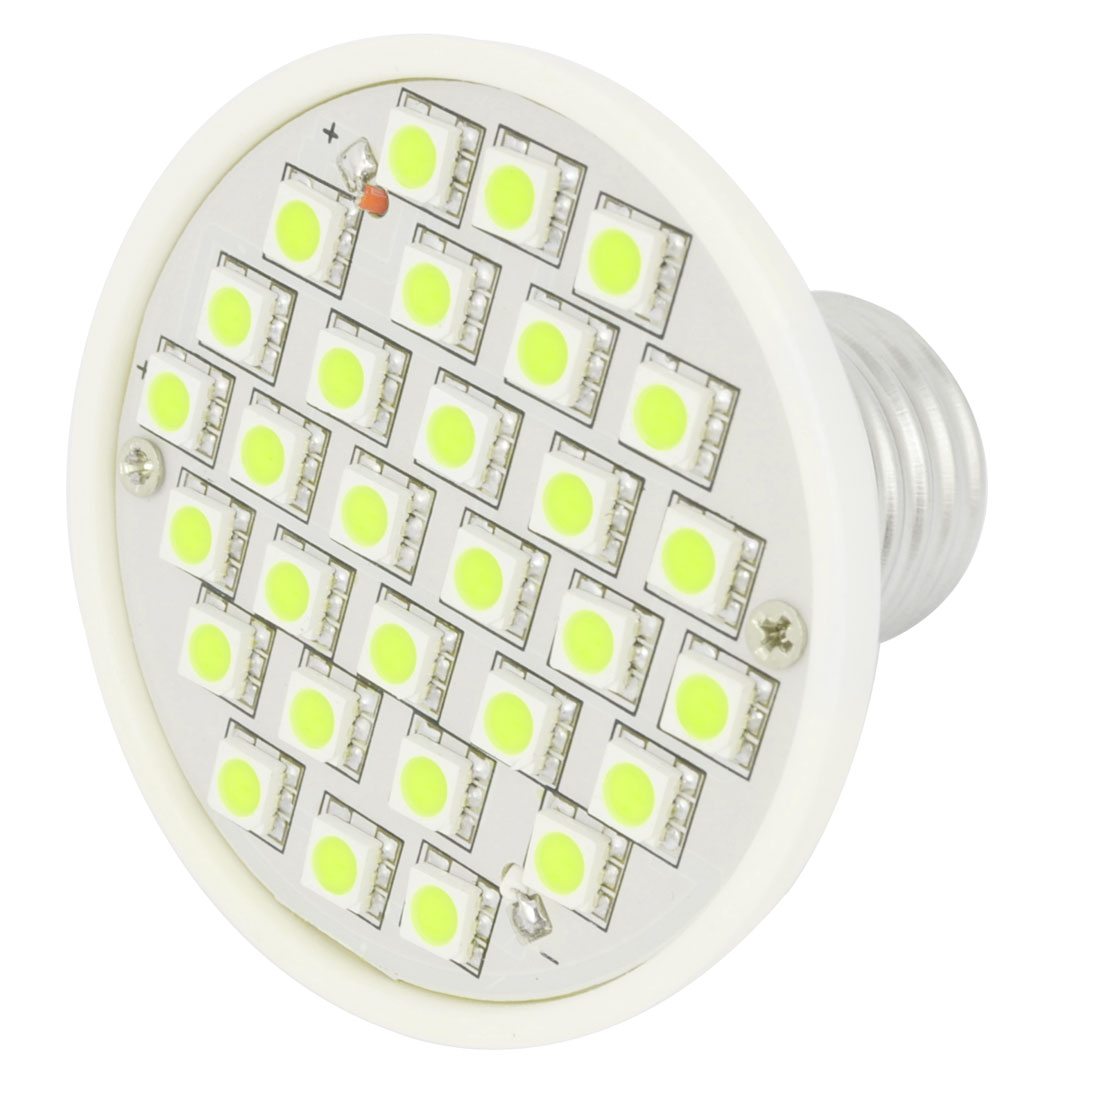 AC 220V E27 Base 30 3528 SMD 3W White LED Down Spot light Bulb